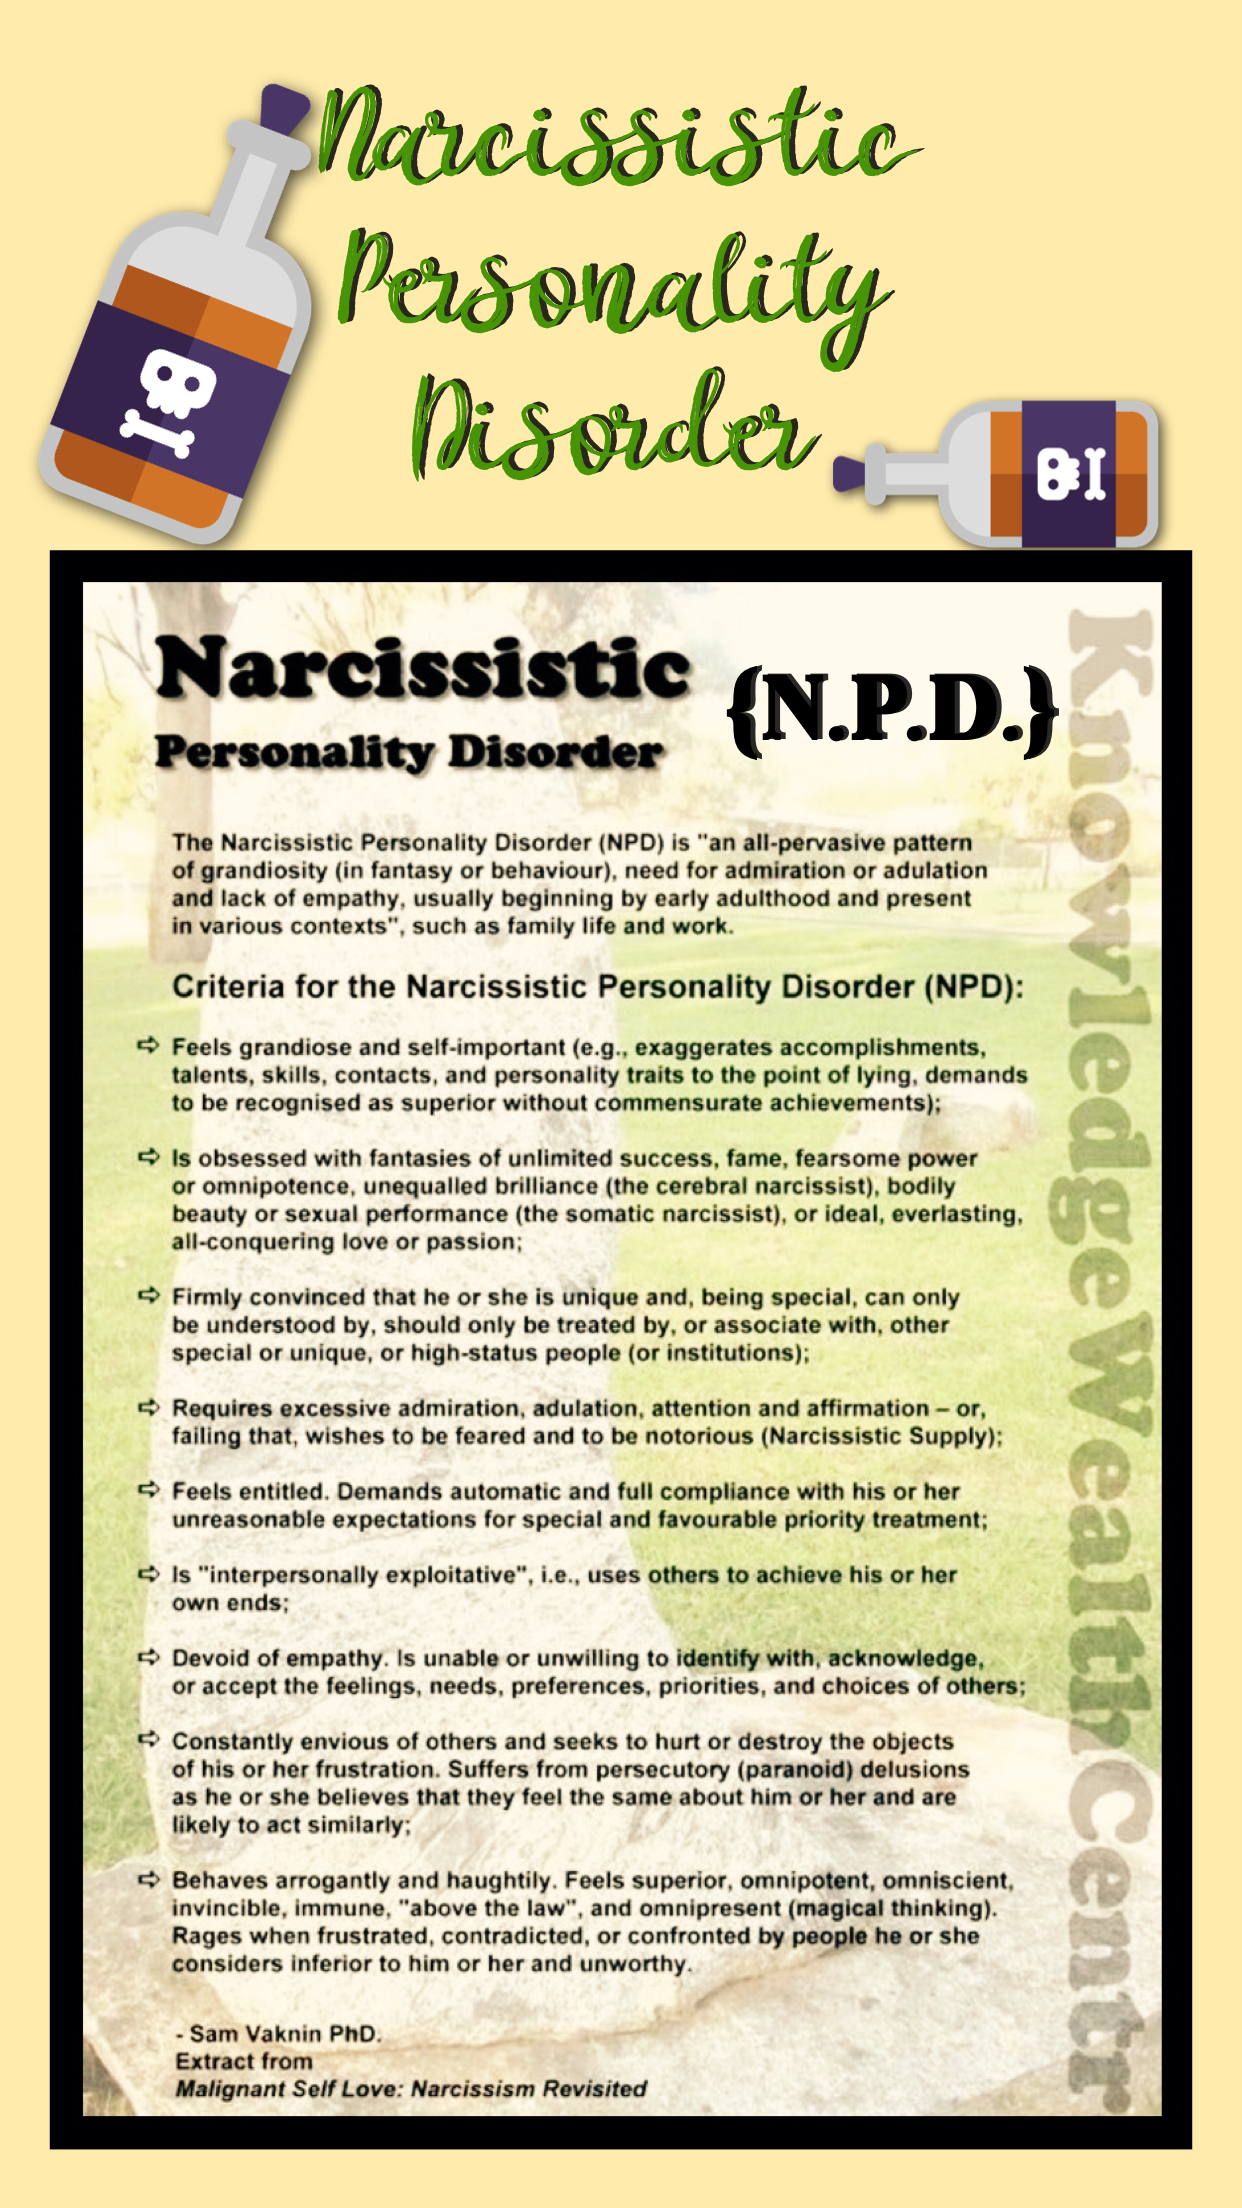 Pin By Tan On No Cure The Narcissist